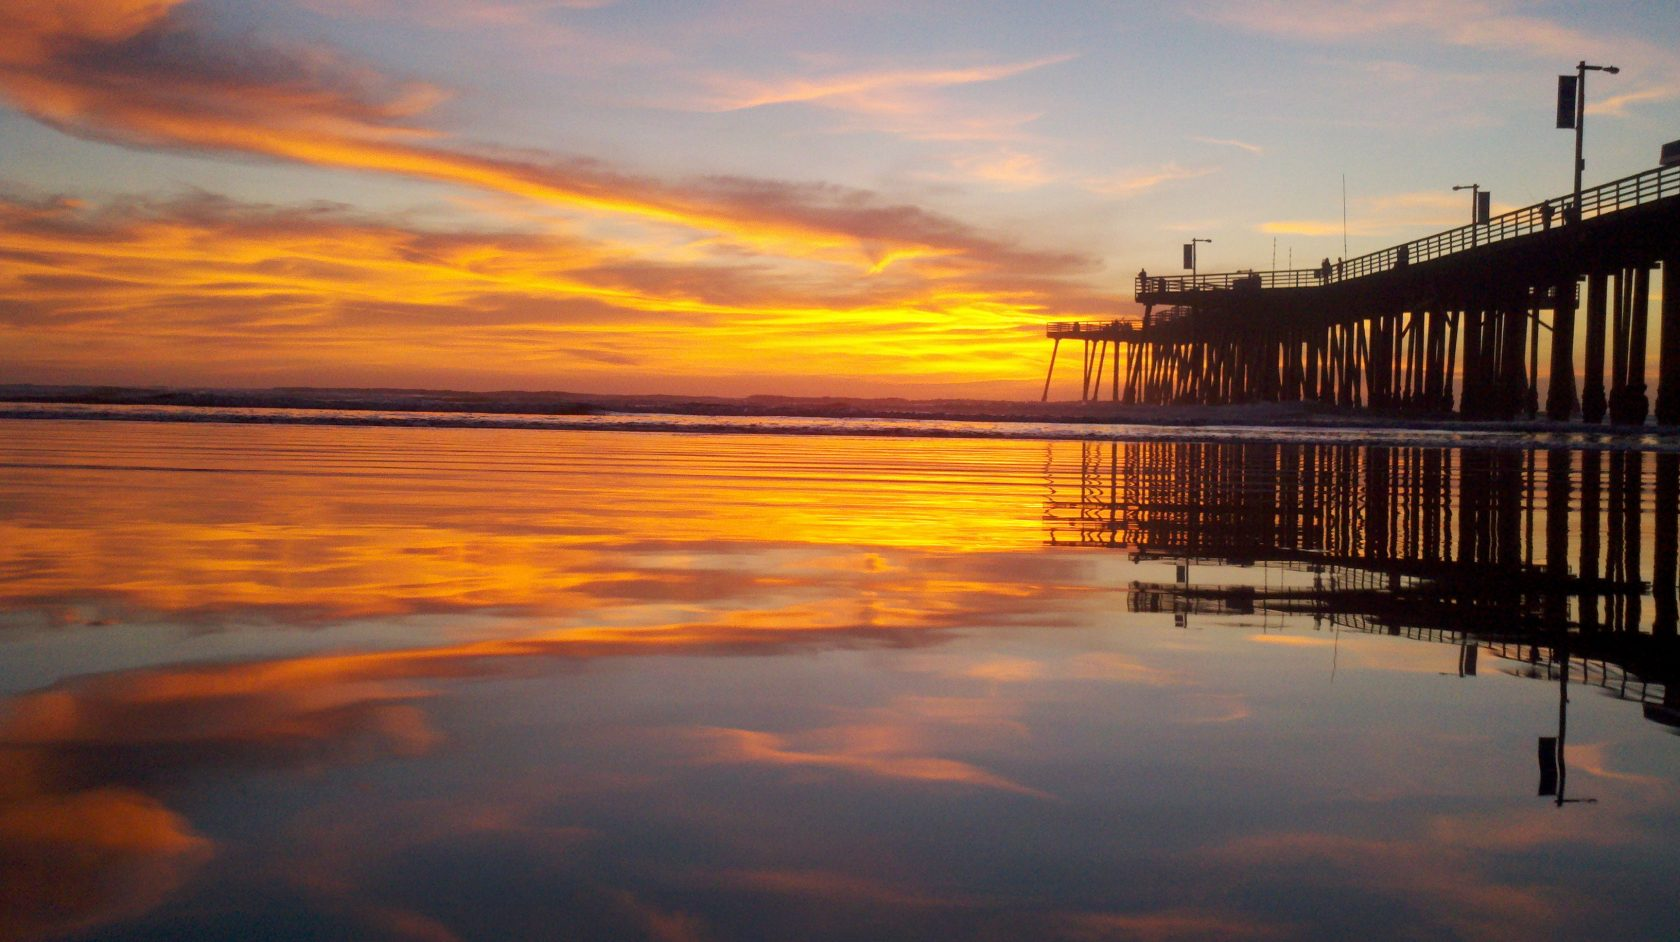 Gorgeous reflection of sunset Pismo Beach pier